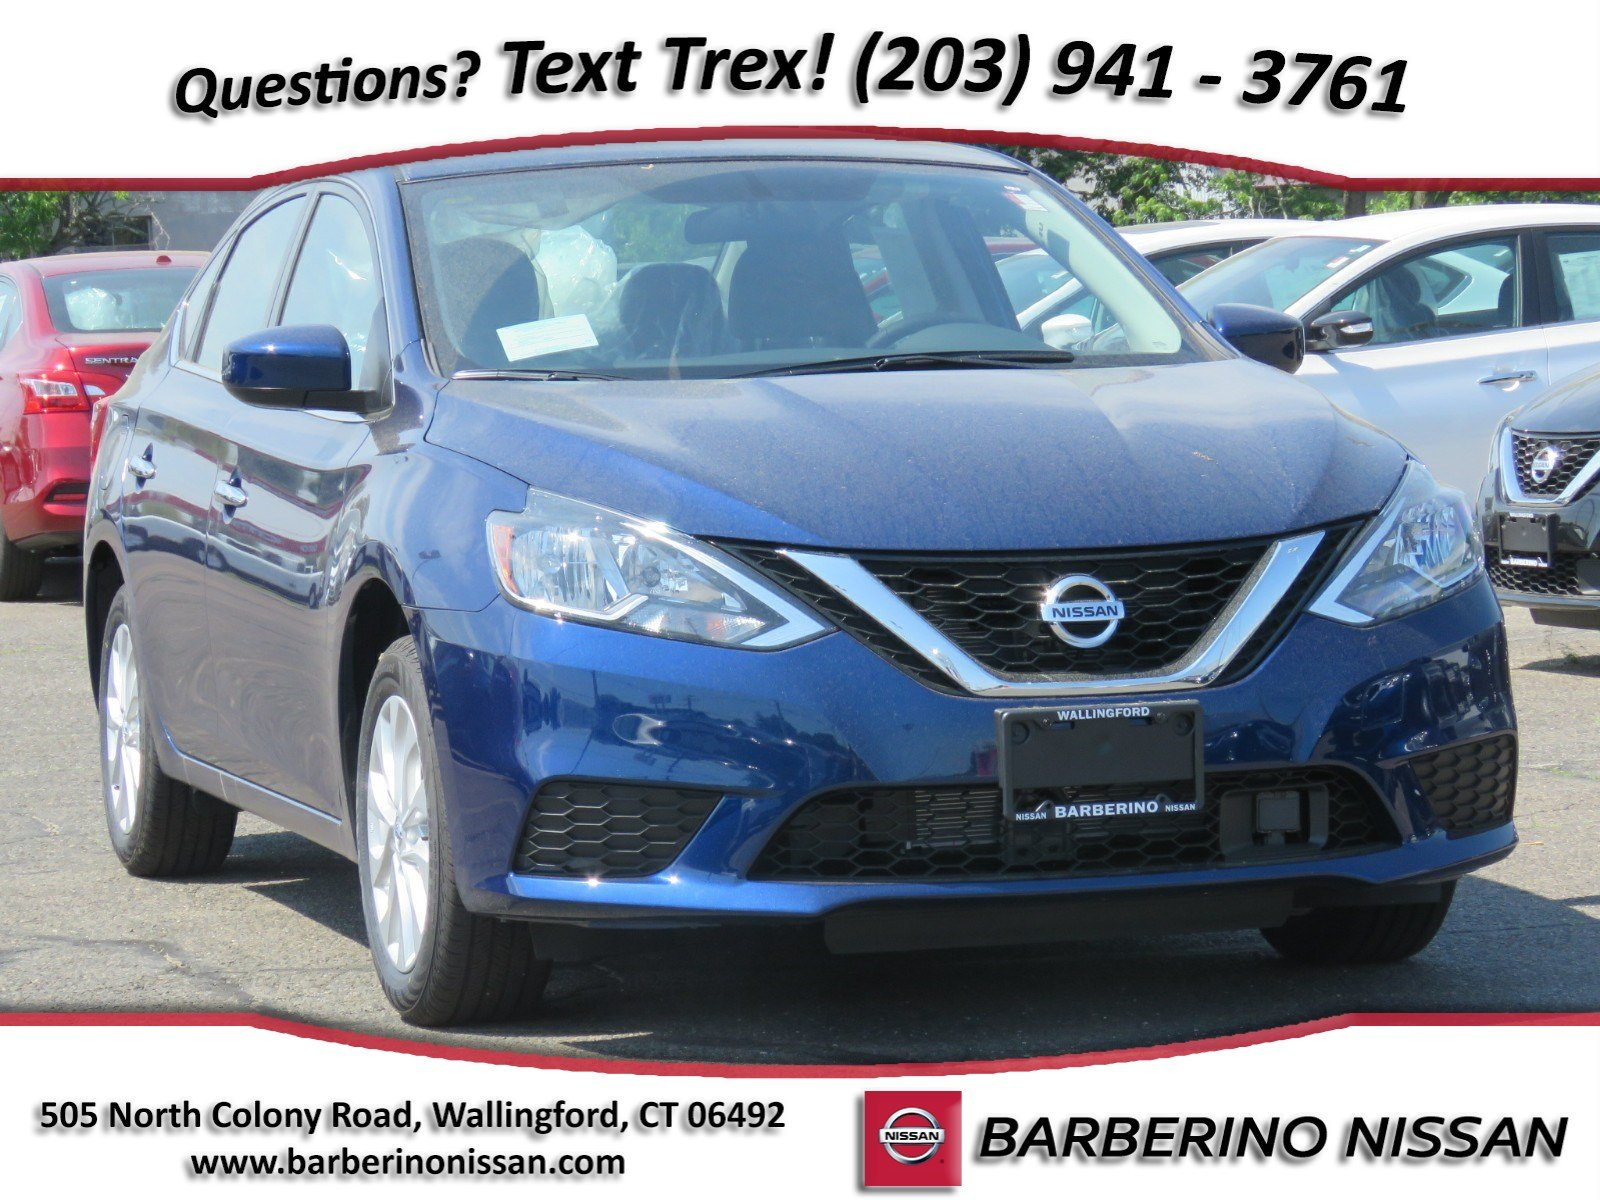 New 2018 Nissan Sentra SV Sedan in Wallingford CT